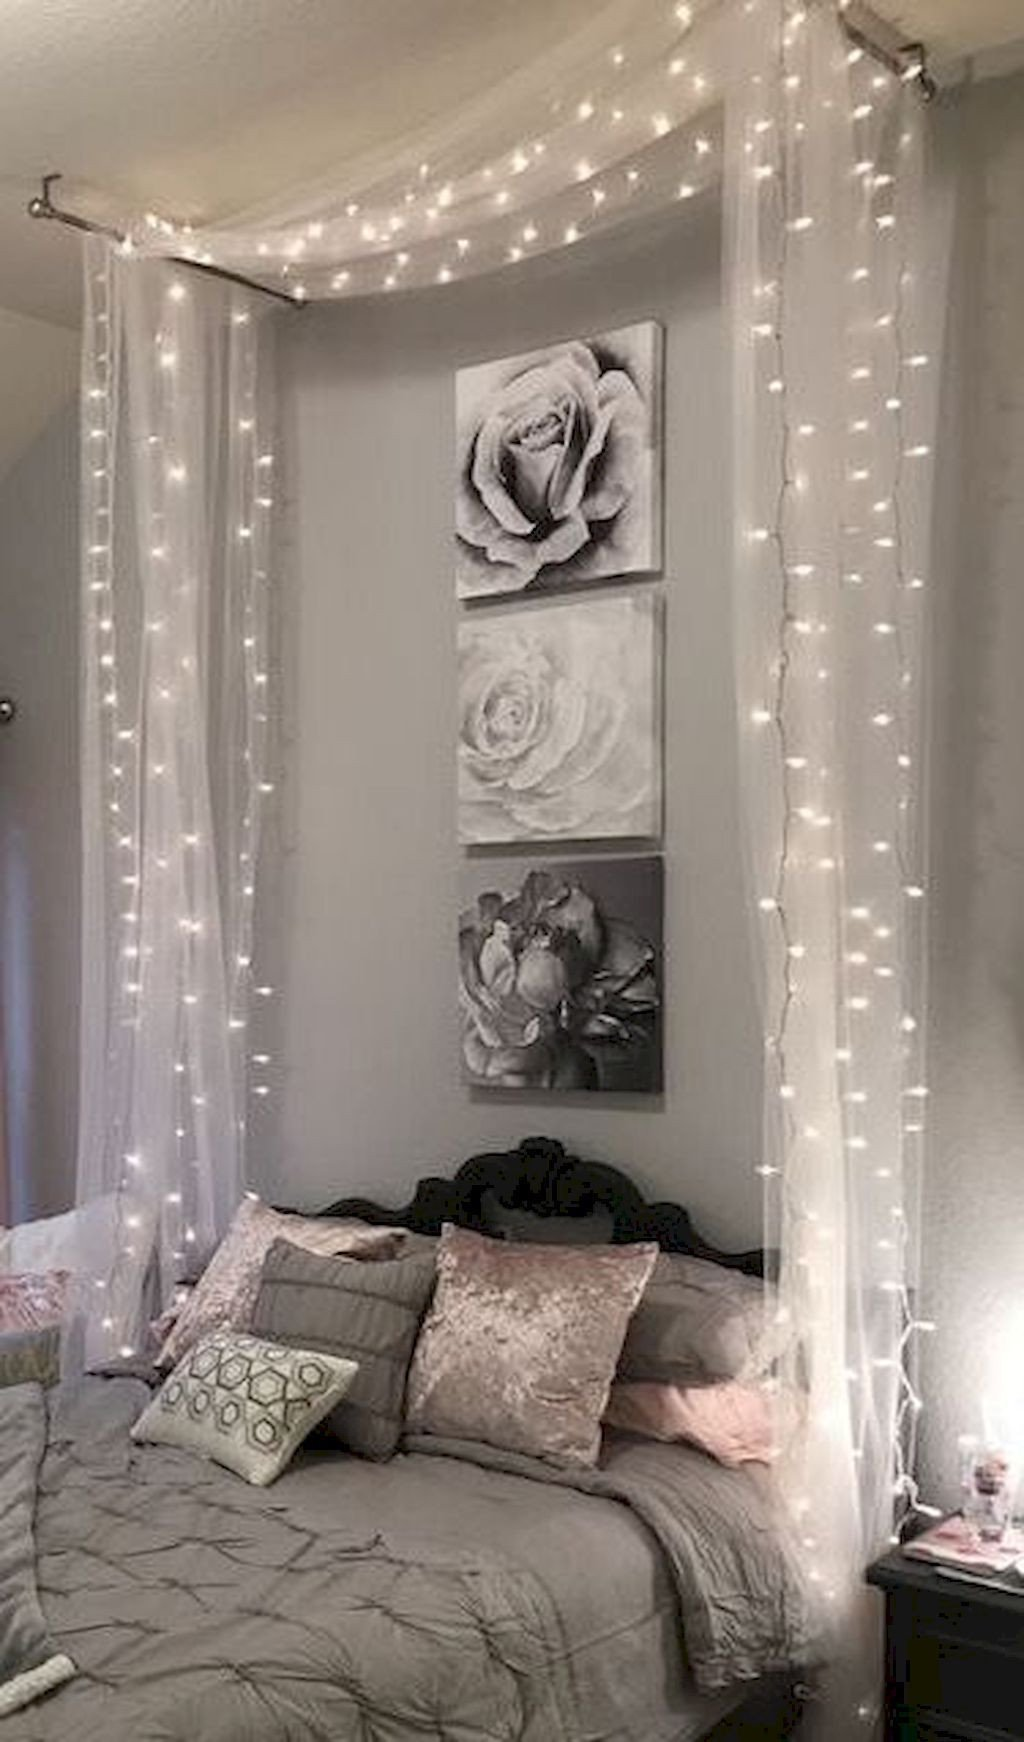 Cute Light for Bedroom Luxury 61 Best Bedroom Decor Ideas to Inspire Succulent Bedroom